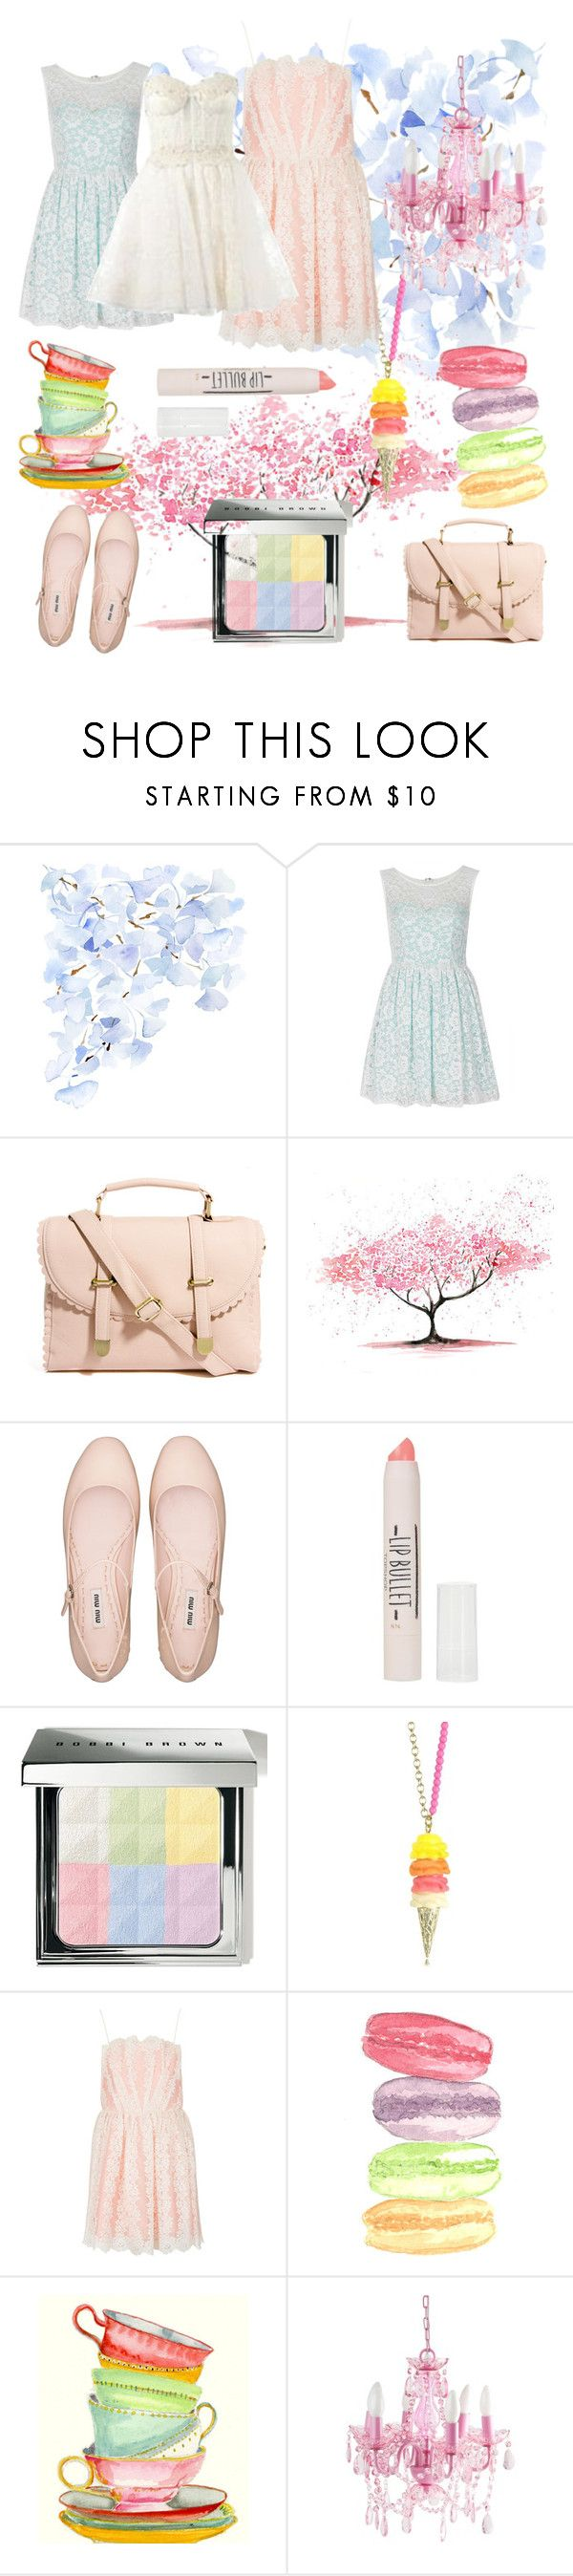 """The last days of summer"" by annie-z-z ❤ liked on Polyvore featuring WALL, TFNC, ASOS, Miu Miu, Topshop, Bobbi Brown Cosmetics, N2 By Les Nereides, Zuhair Murad, lace and miumiu"